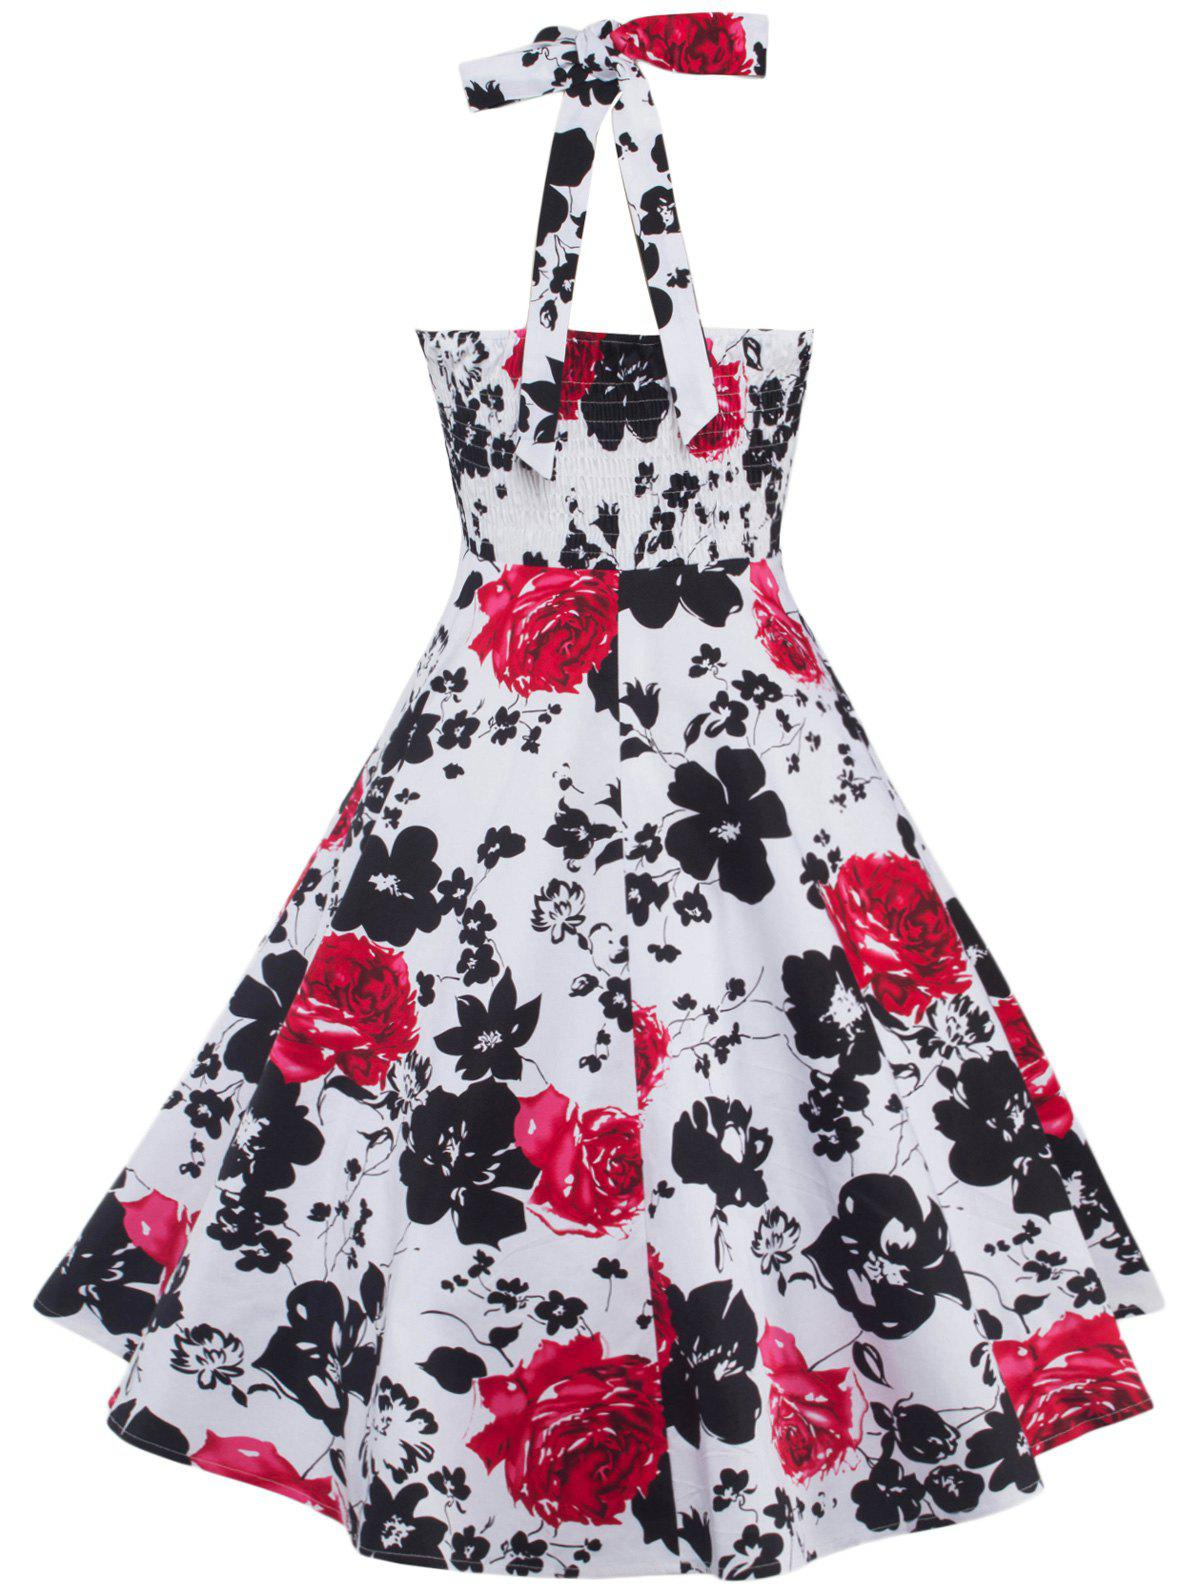 Swing Halter Floral Print Shirred Dress - Noir et Blanc et Rouge S